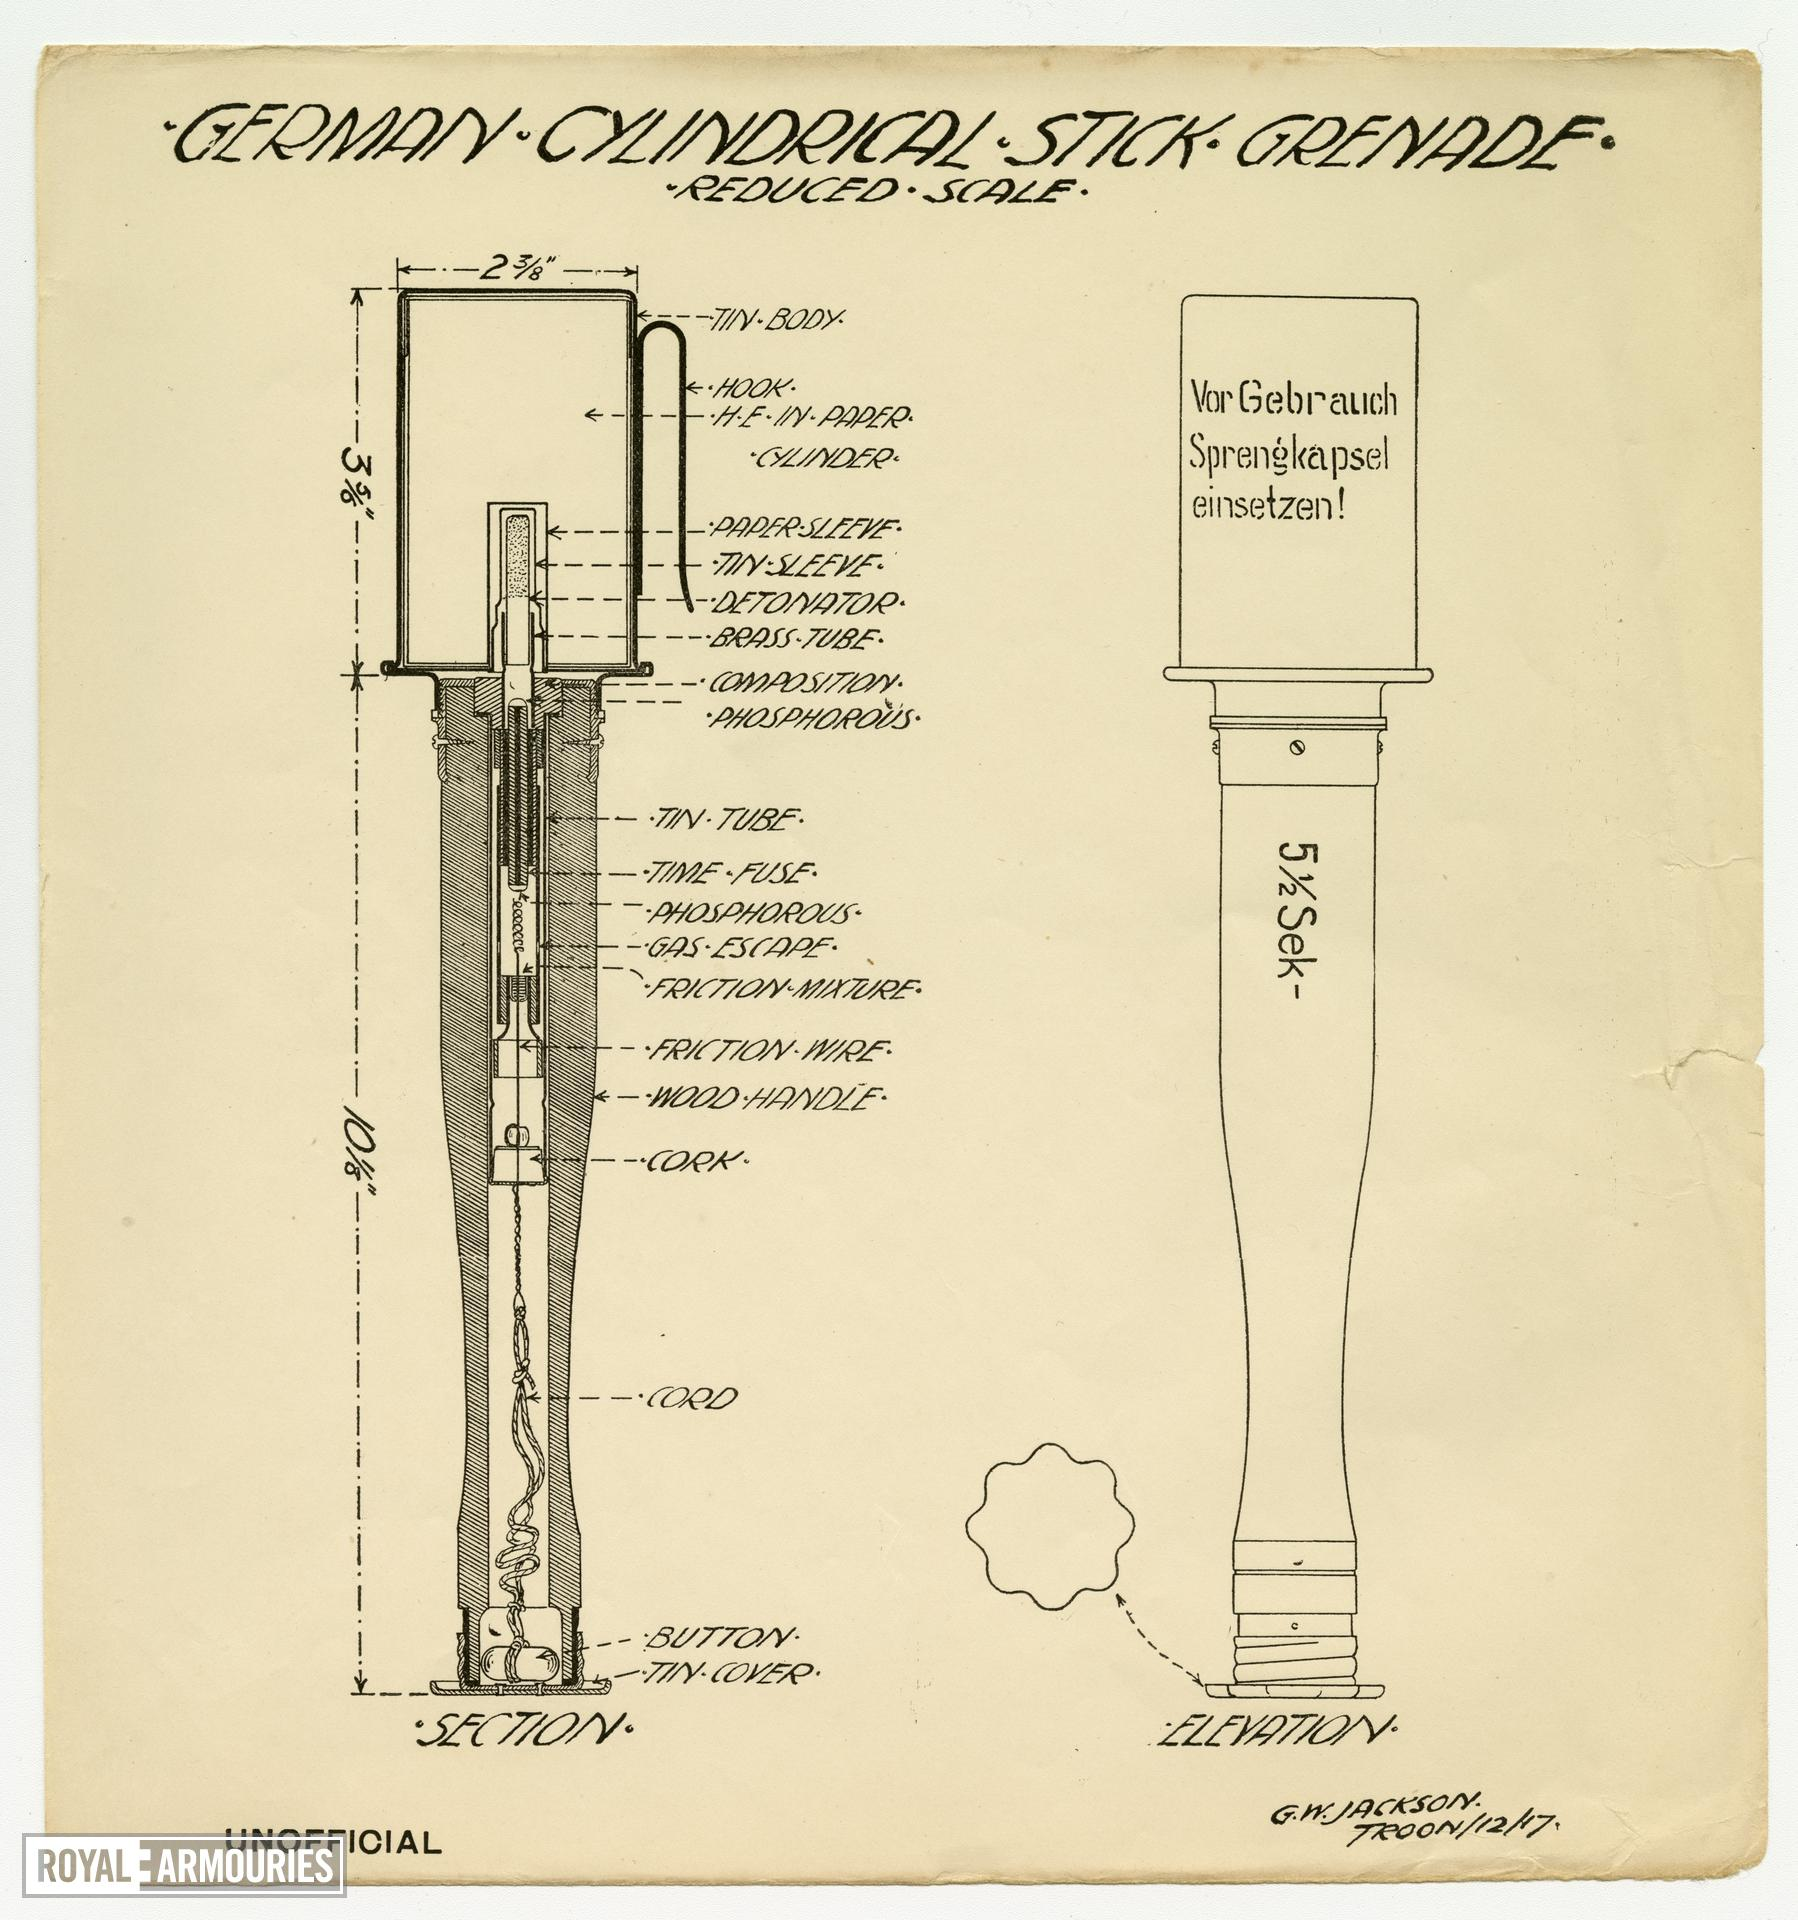 Instructional diagram showing the German cylindrical stick grenade, taken from notes on Grenades / Bombing Course, School of Arms, Hythe by R.V Shepherd, 1st Battalion, West Yorkshire Regiment, Feb 6th, 1920.